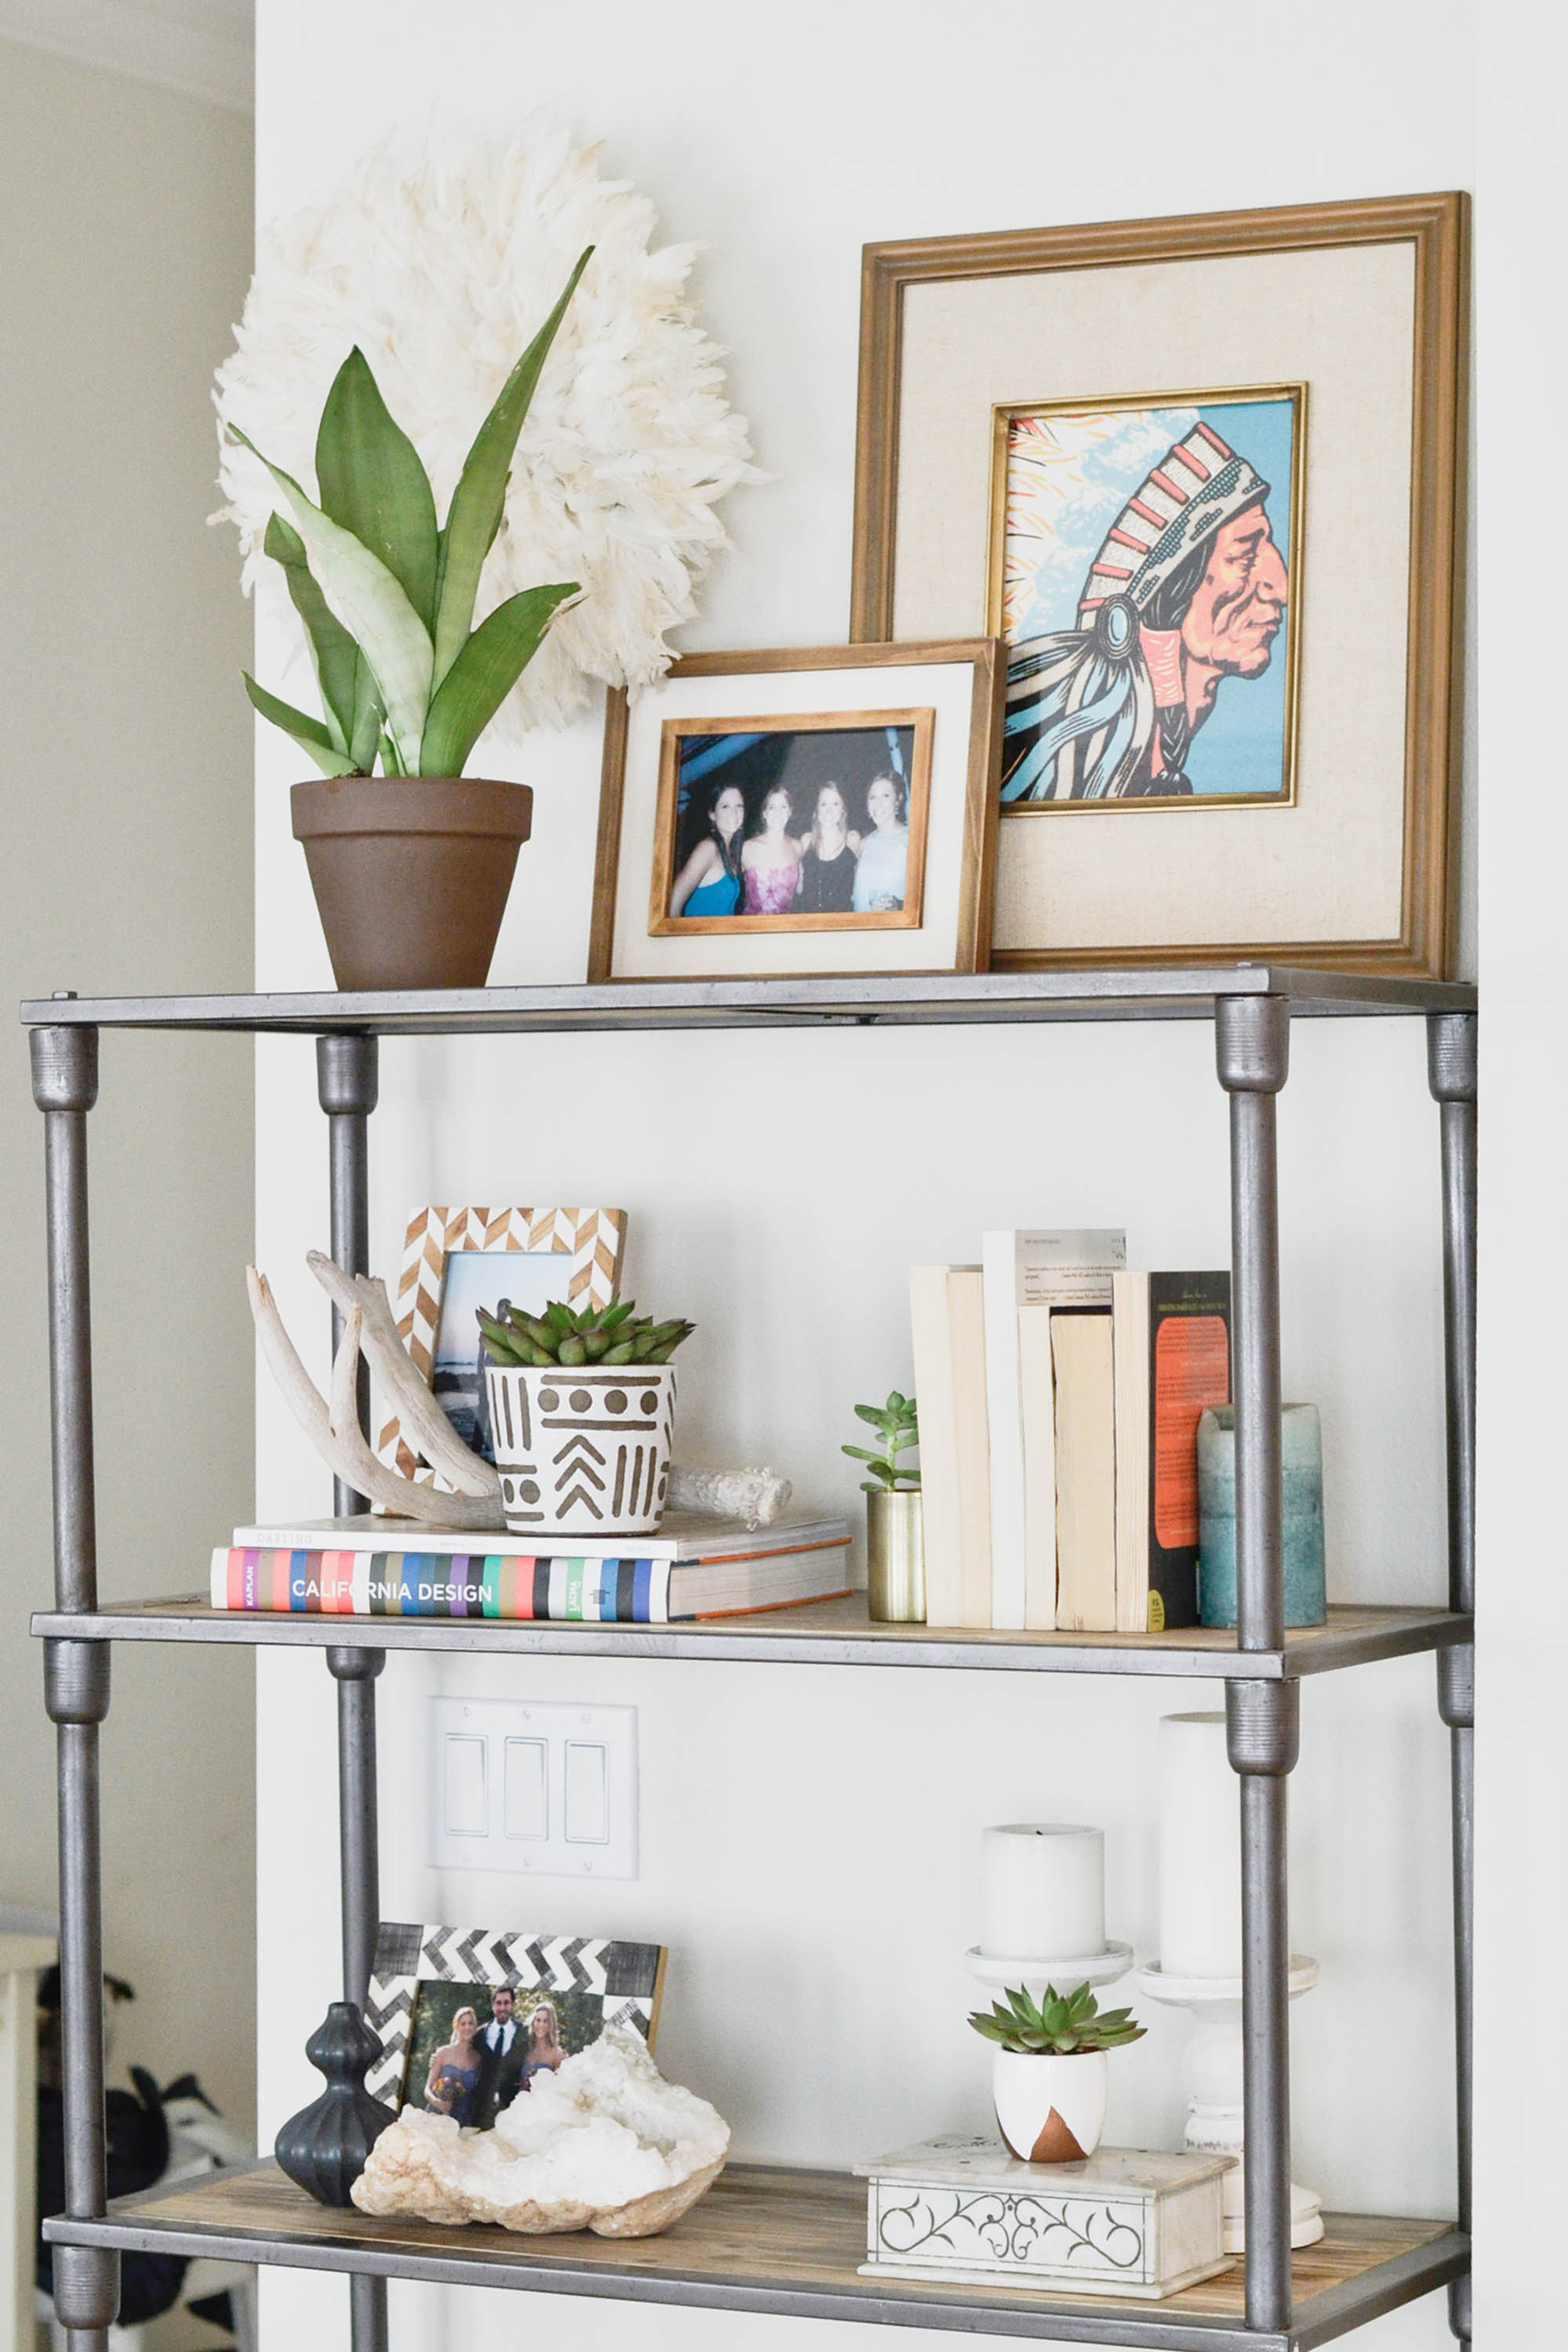 how to style a bookshelf bookshelf styling bookshelf style bookshelf decor shelfie - Bookshelf Decor